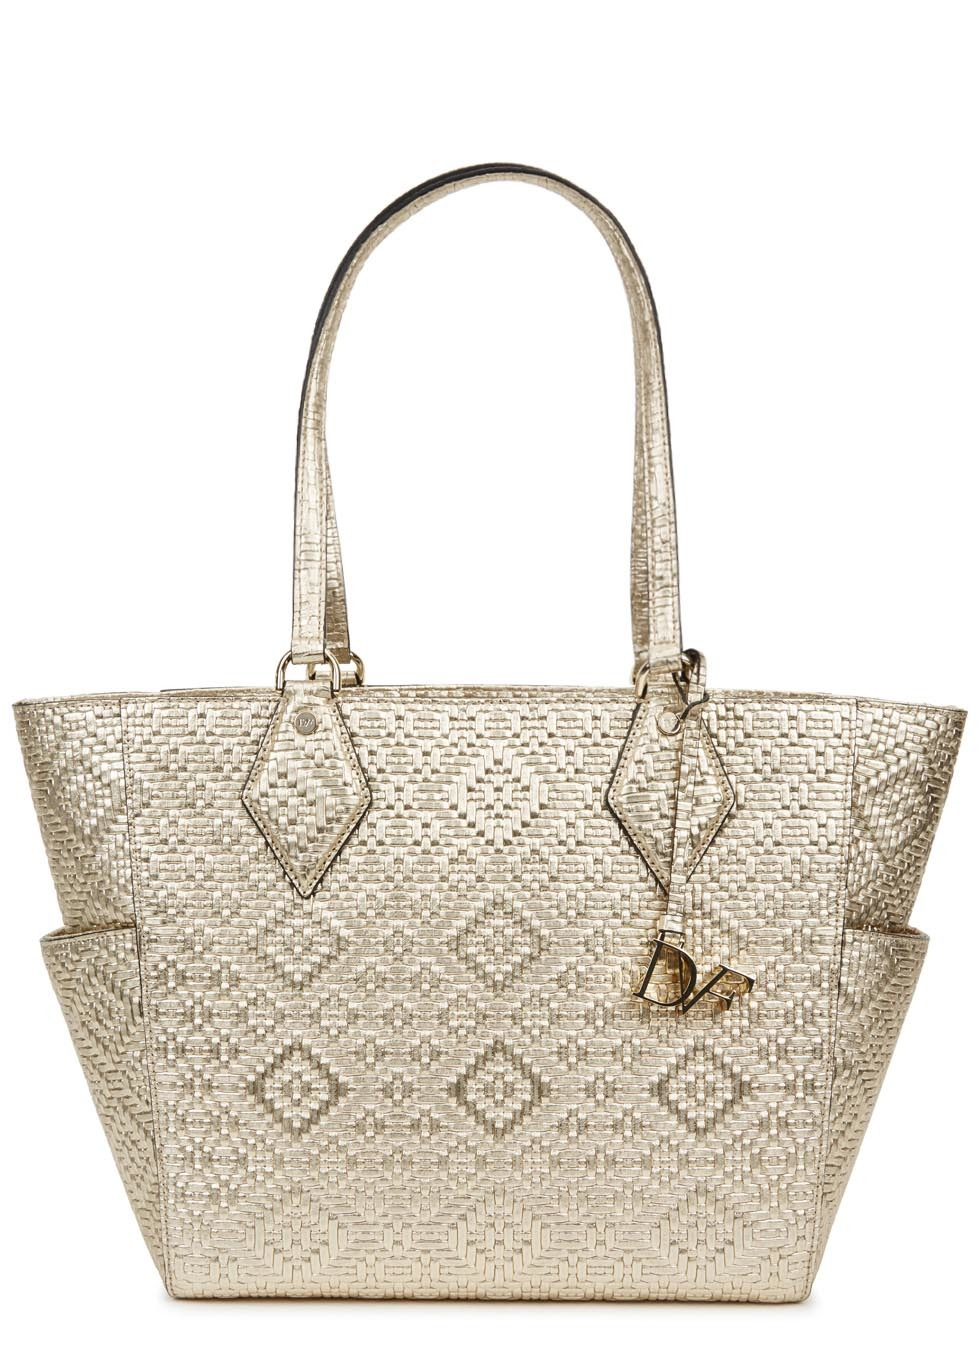 Gold Woven Leather Tote - predominant colour: gold; occasions: casual, creative work; type of pattern: heavy; style: tote; length: handle; size: standard; material: leather; finish: metallic; pattern: patterned/print; season: s/s 2016; wardrobe: highlight